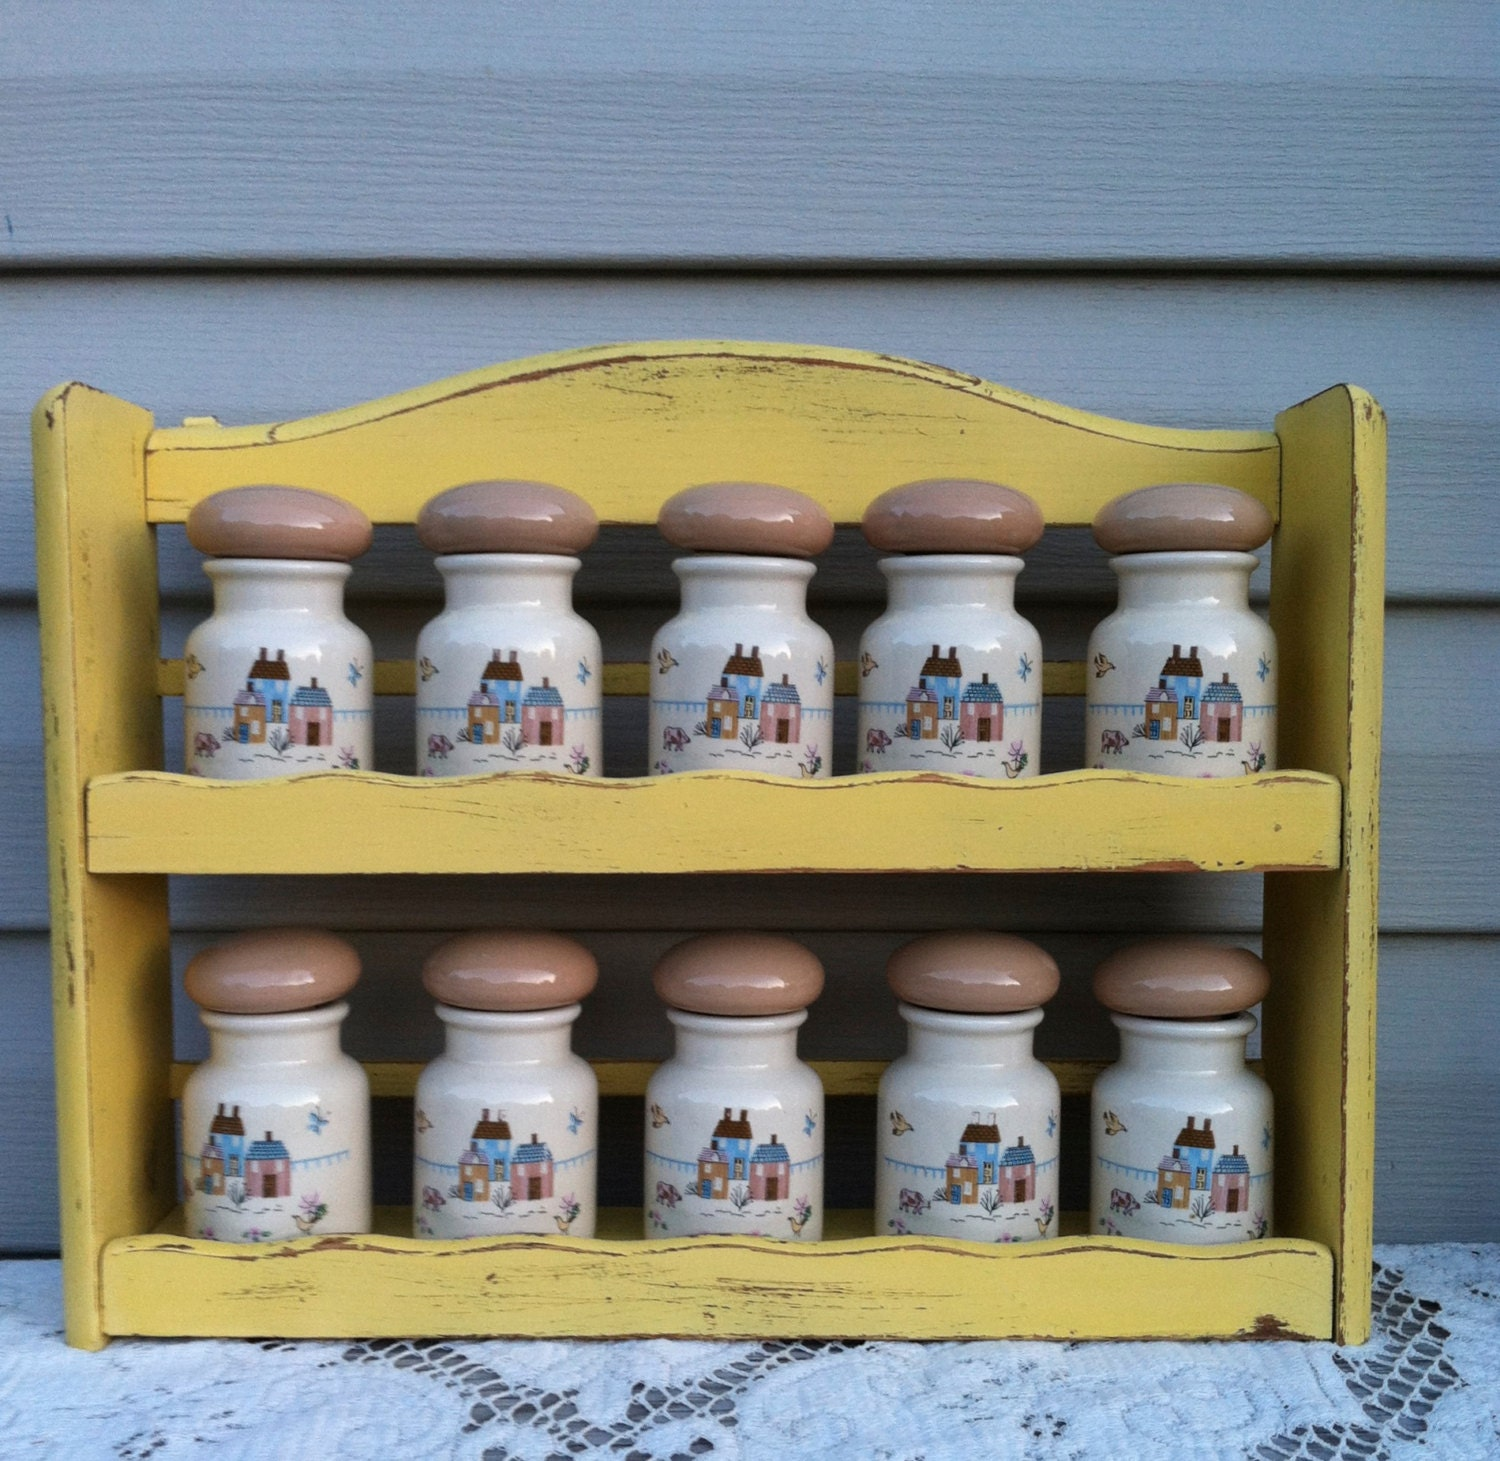 Kitchen Shelf For Spices: Vintage Country Kitchen Spice Rack W/10 Spice By